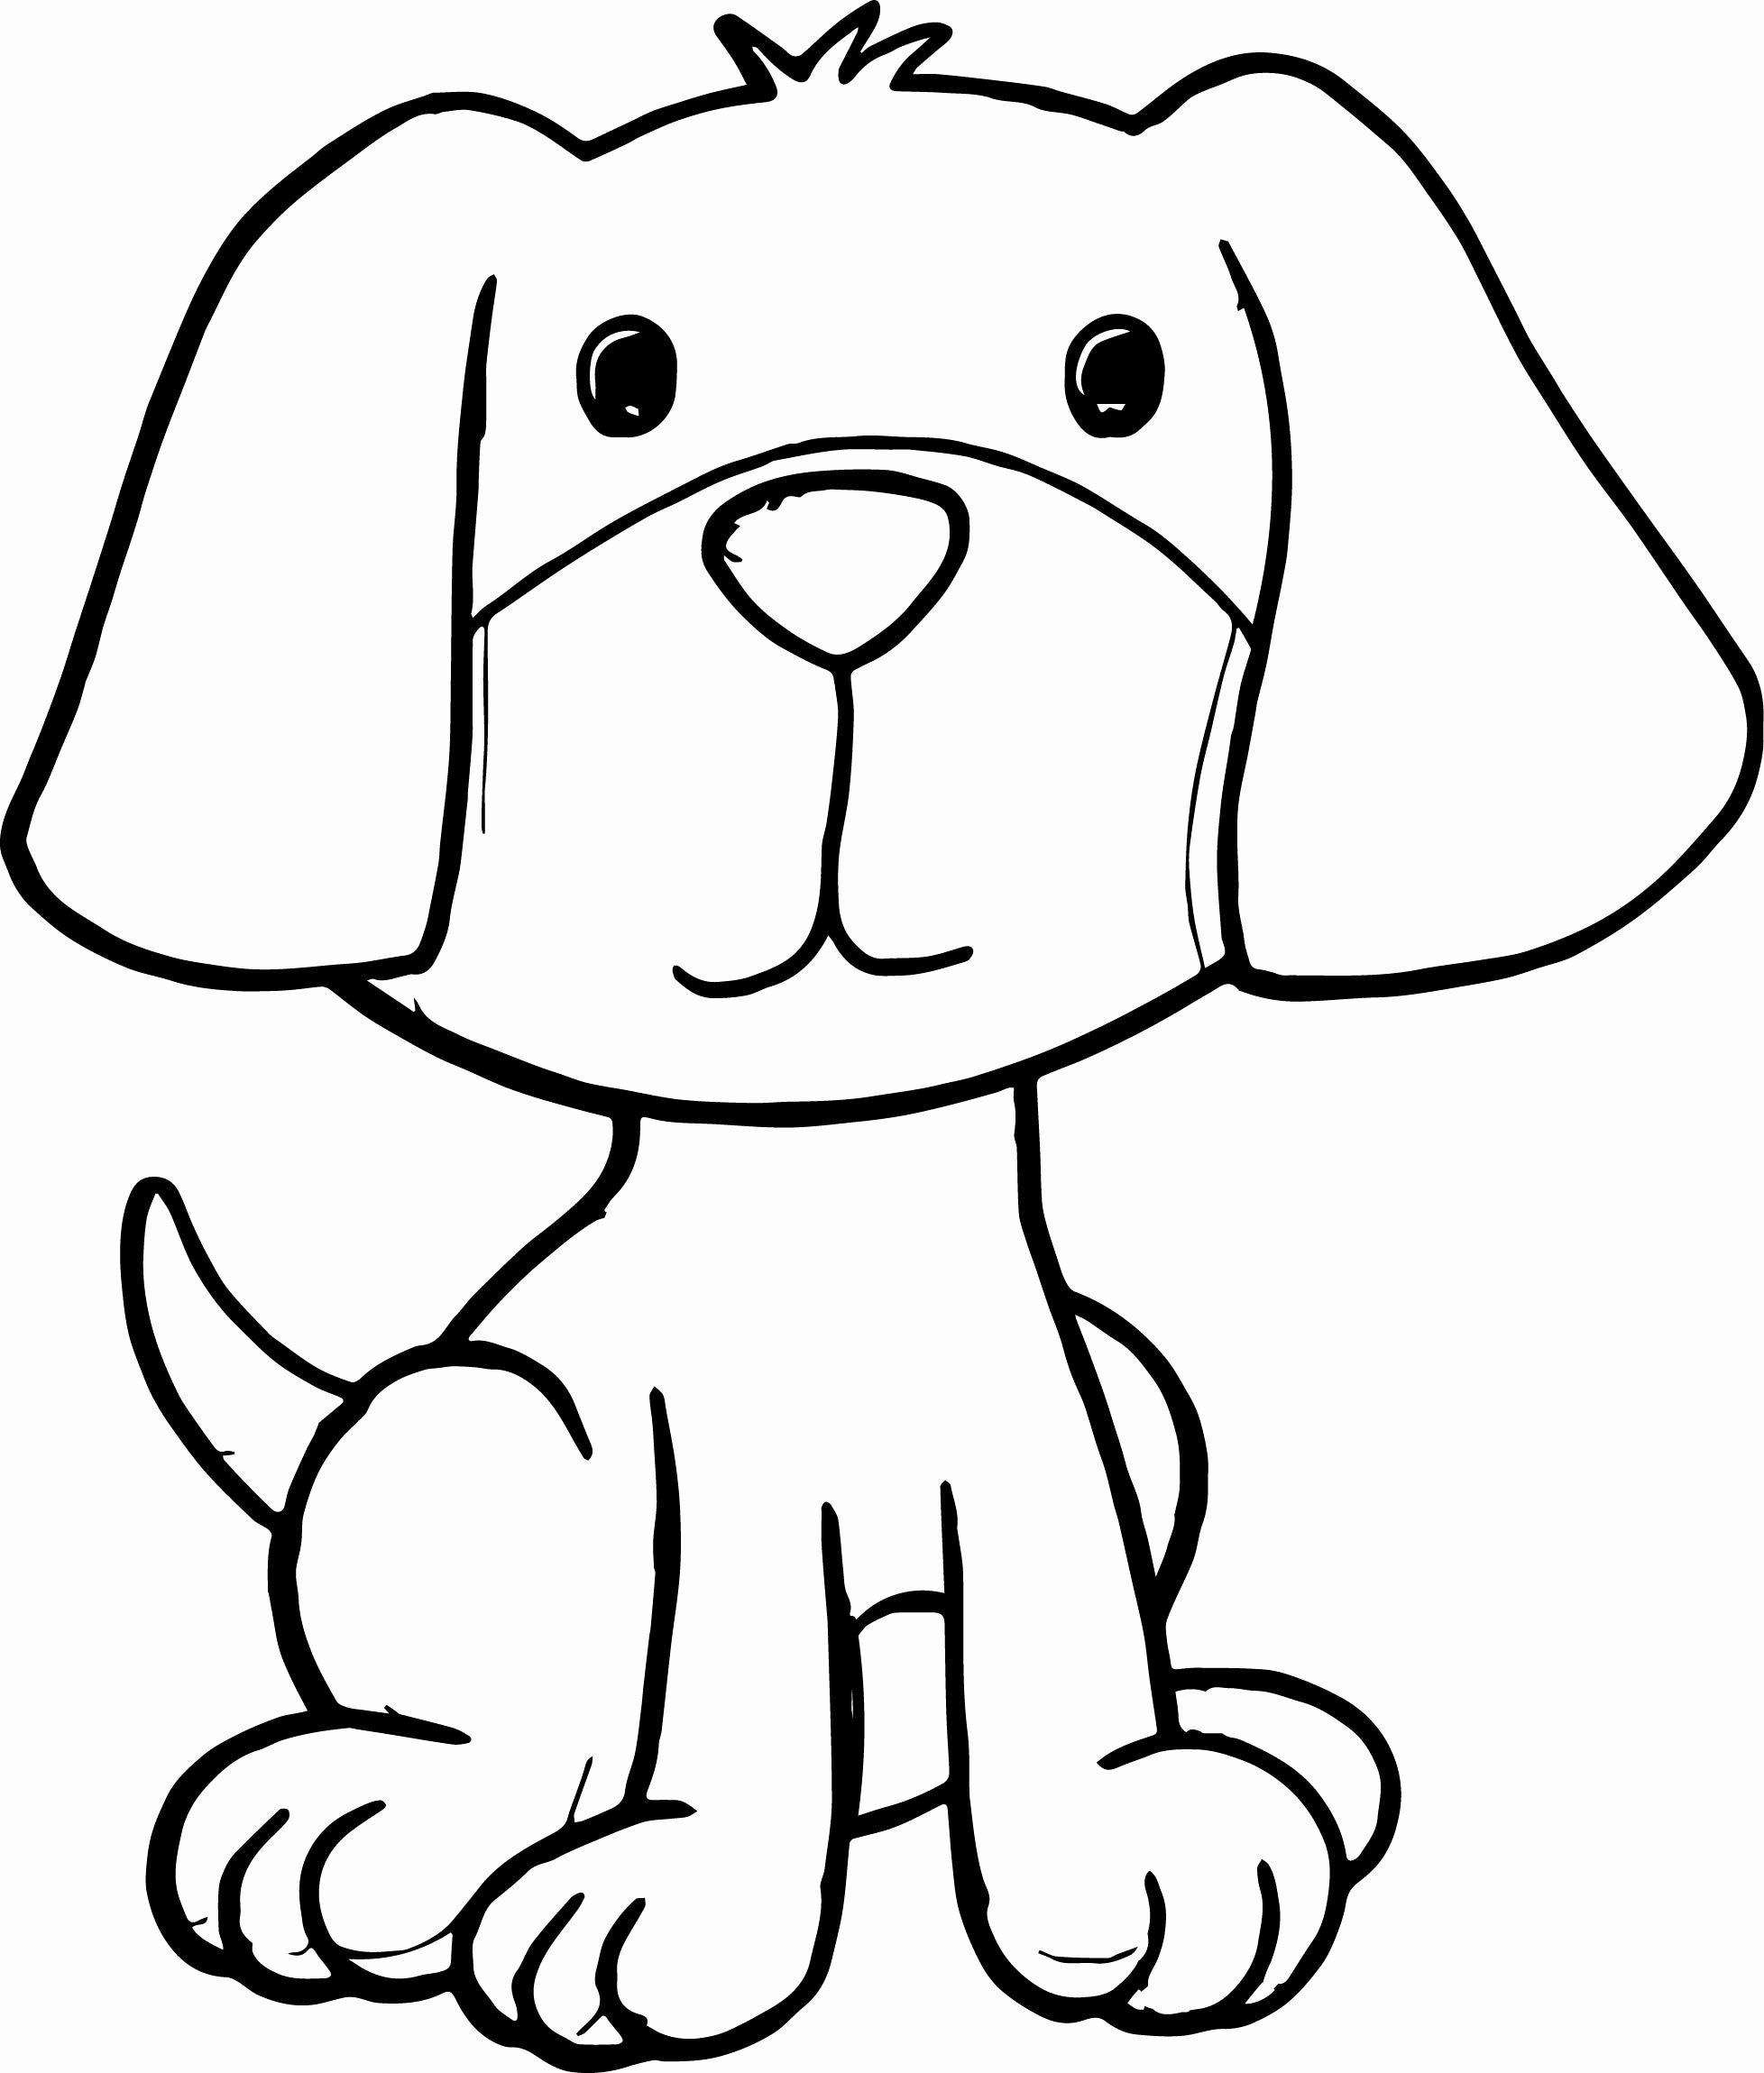 Cartoon Dog Coloring Pages Best Of Puppy Cute Cartoon Puppies Dog Puppy Coloring In 2020 Puppy Cartoon Puppy Coloring Pages Cartoon Dog